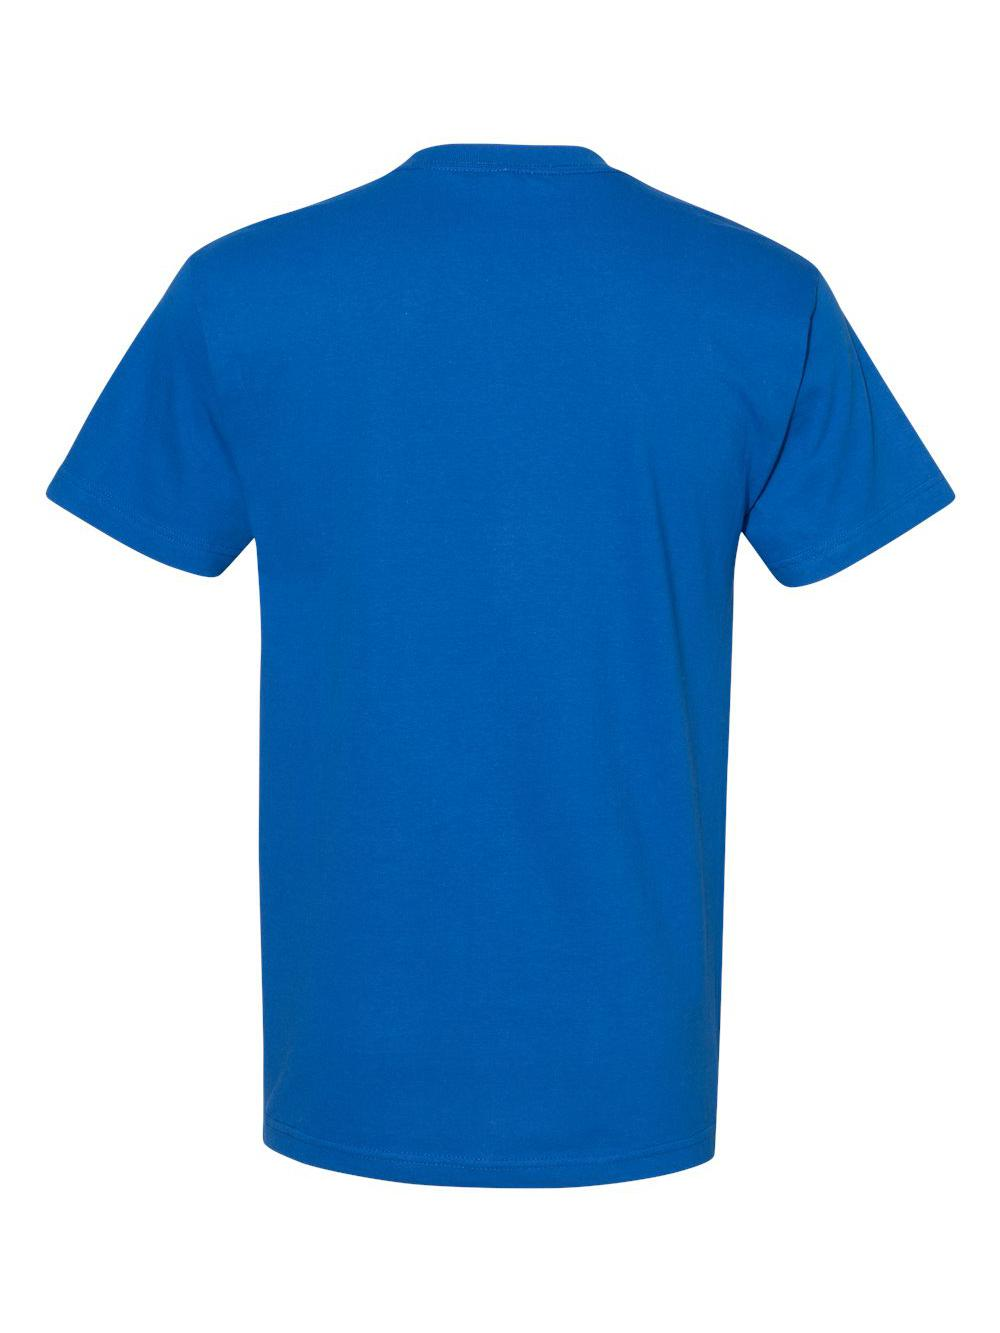 ALSTYLE-Classic-T-Shirt-1301 thumbnail 69